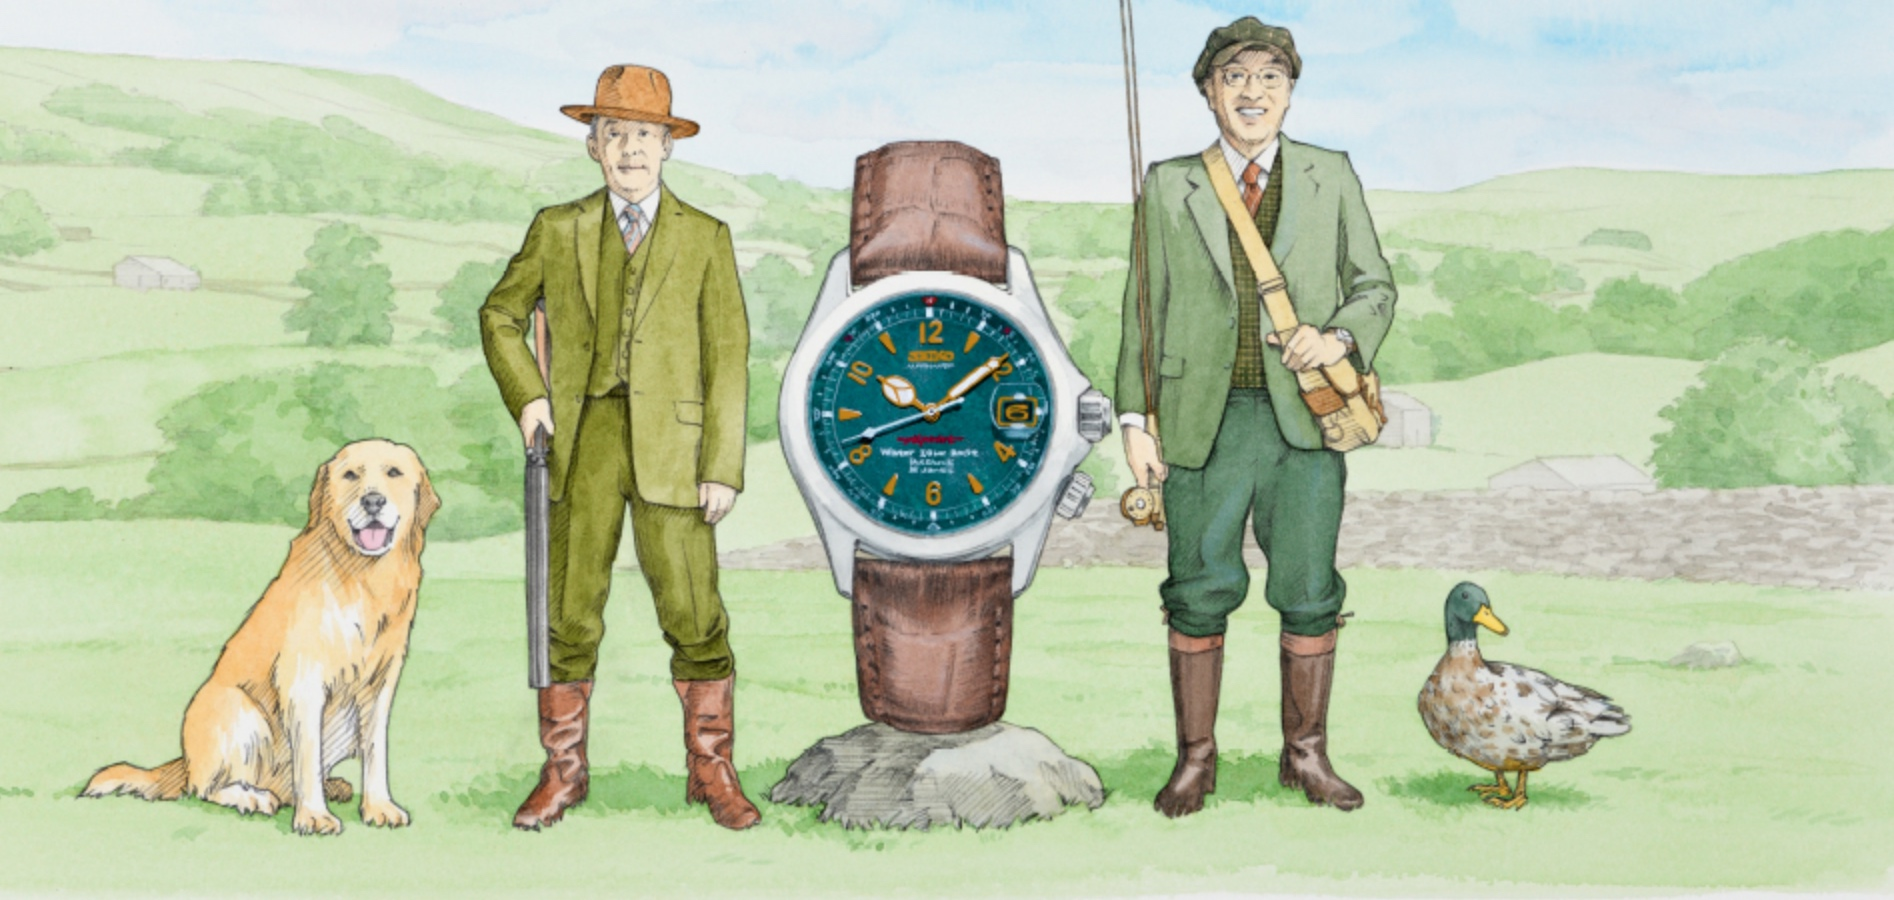 Seiko Alpinist, History of the Seiko Alpinist